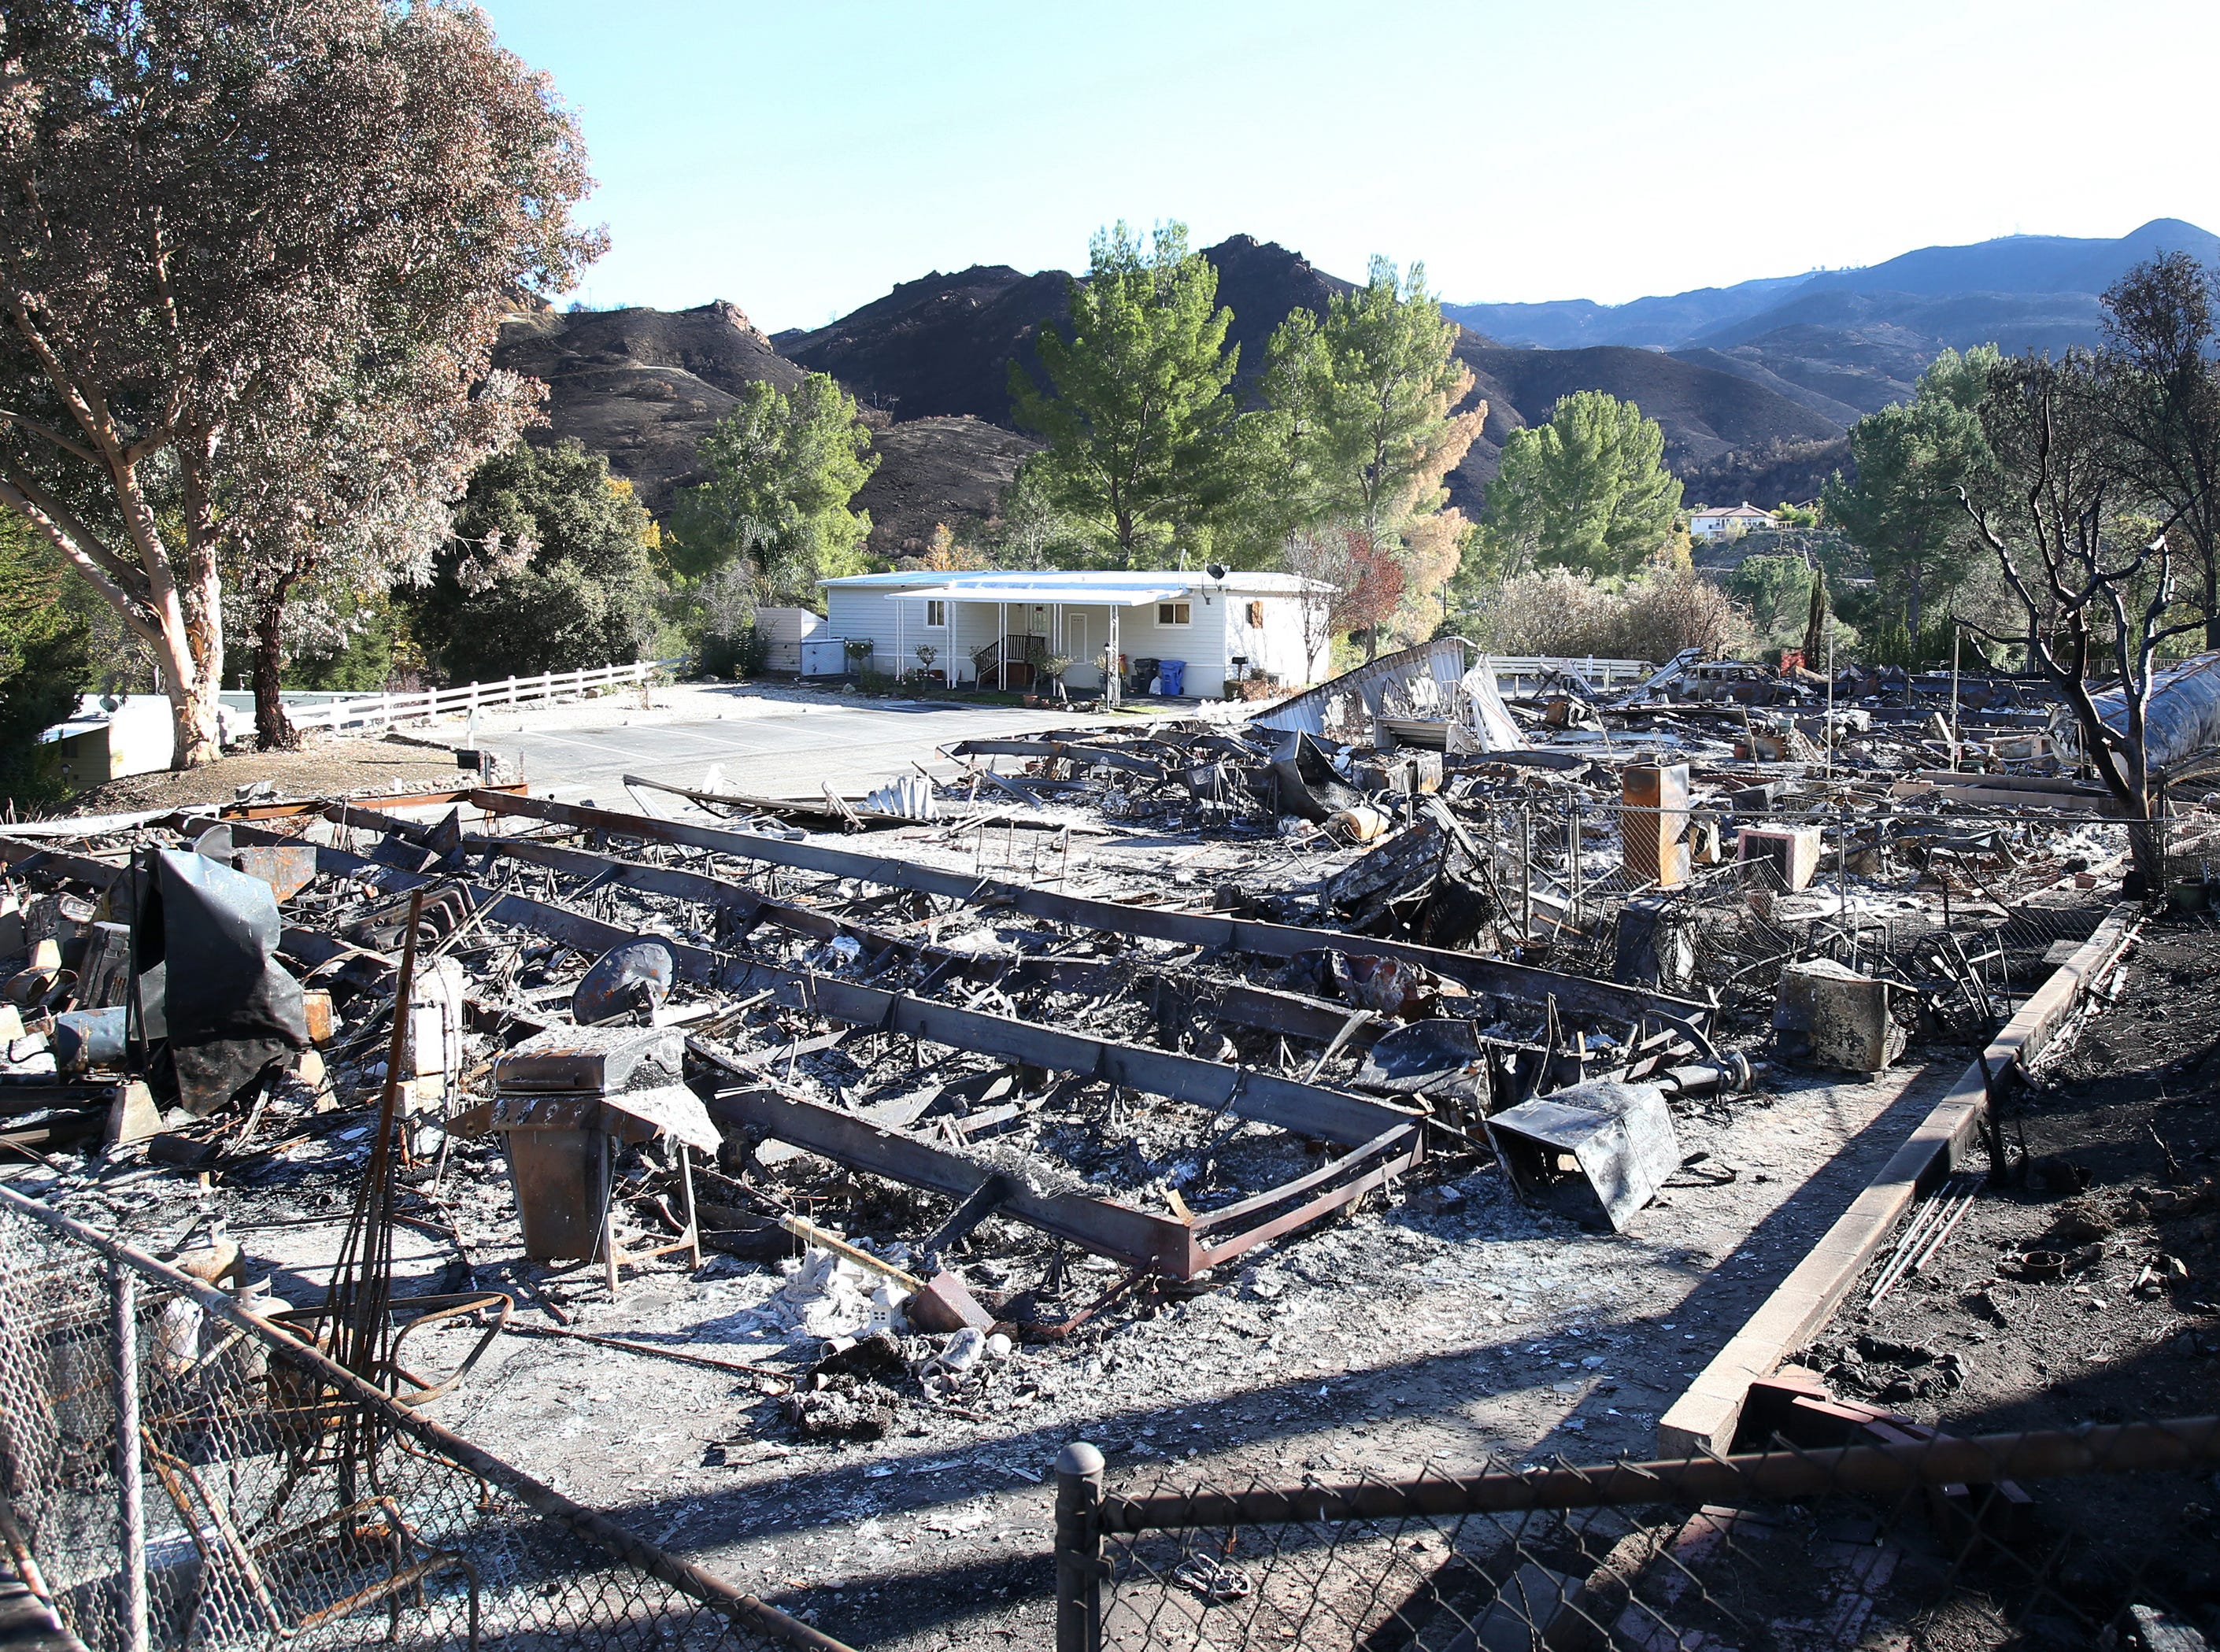 One home remains standing among the many destroyed from the Woolsey Fire at the Seminole Springs Mobile Home Park in Agoura Hills.